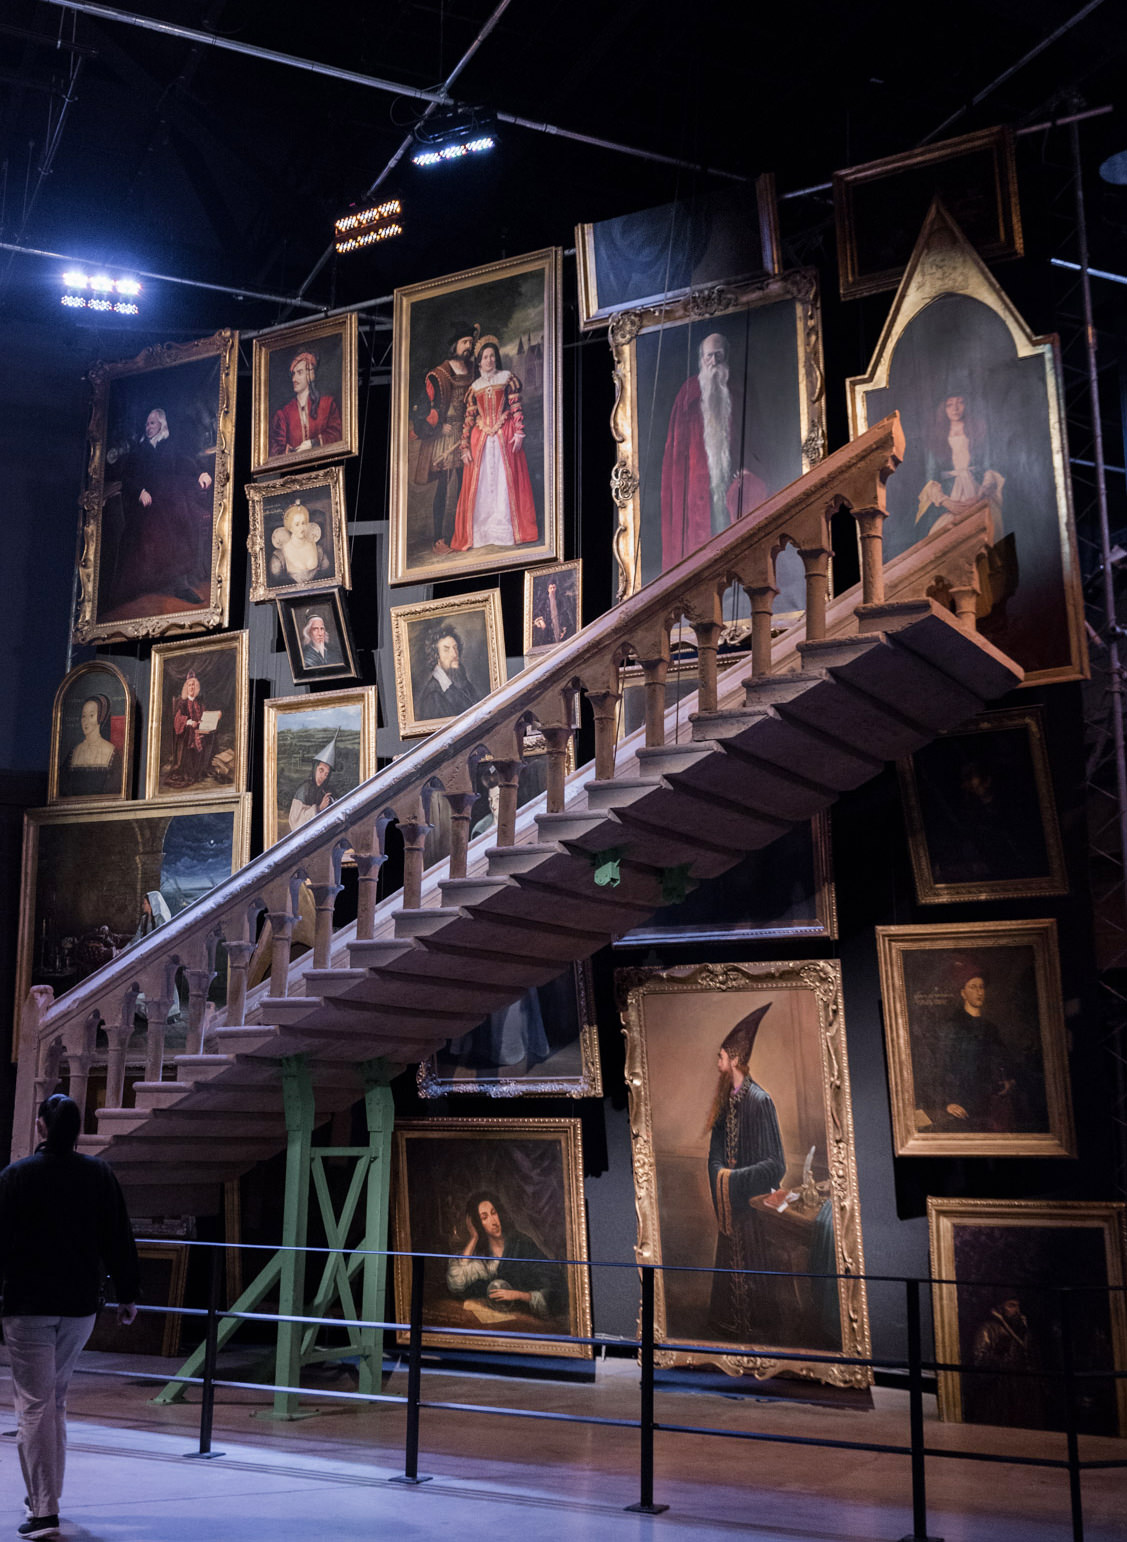 Blog-Mode-And-The-City-Lifestyle-Visite-Studios-Harry-Potter-Londres-9